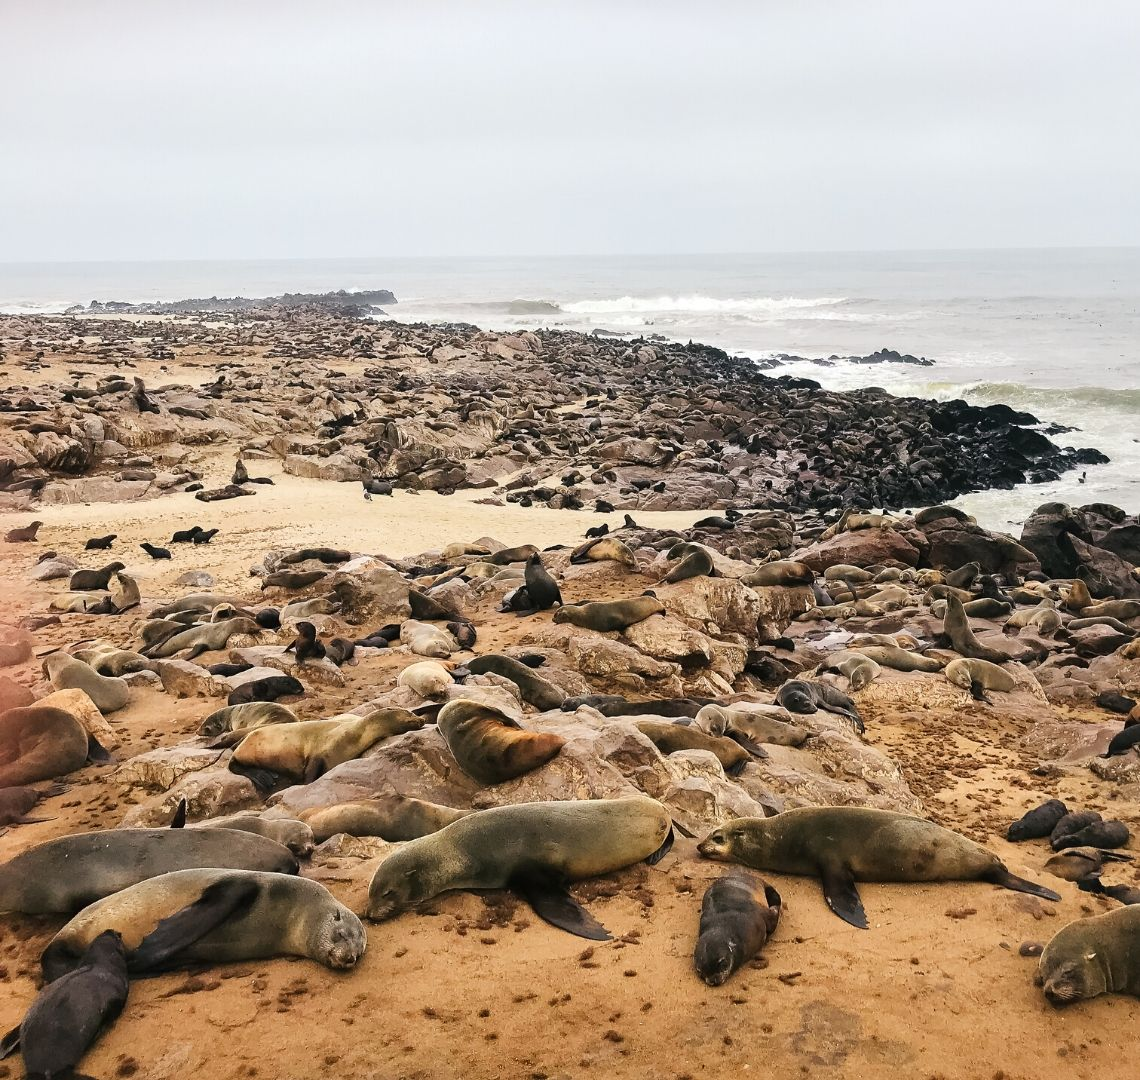 Just a few of the 100,000 seals that are part of the Cape Cross colony. They are lying next to and on top of each other on rocks and sand right by the water's edge.